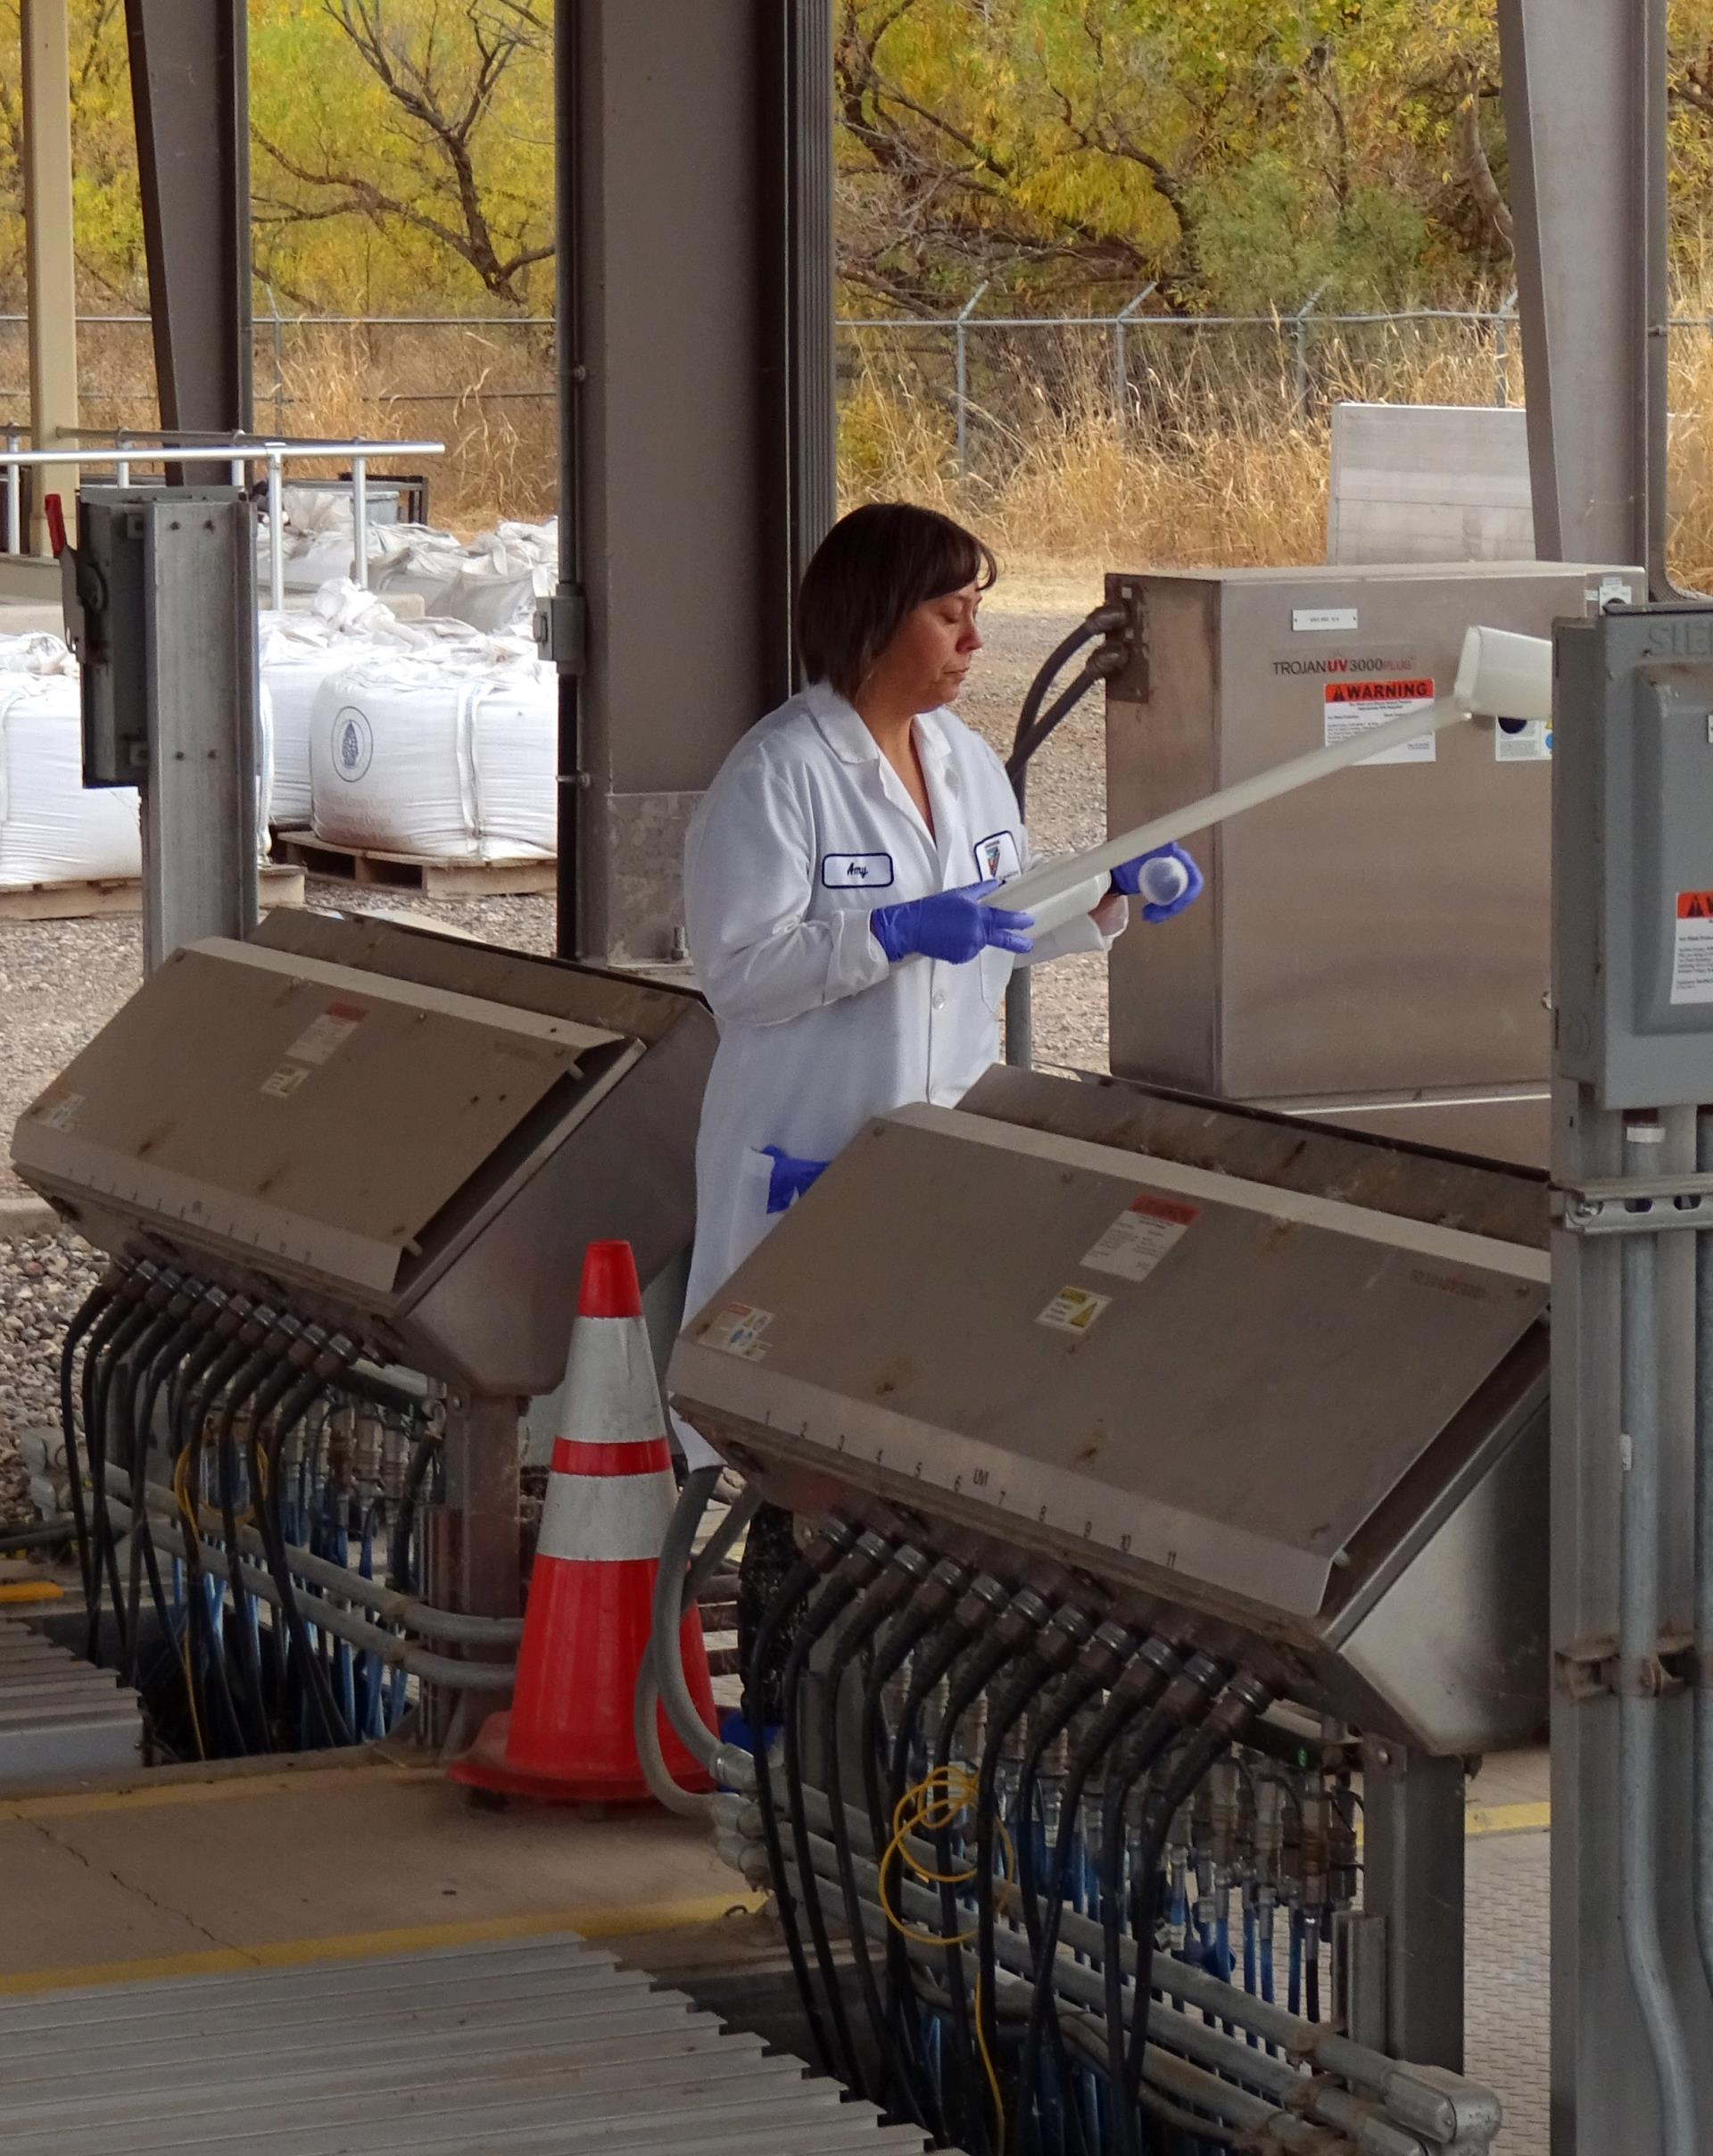 A lab technician collects samples at the facility.